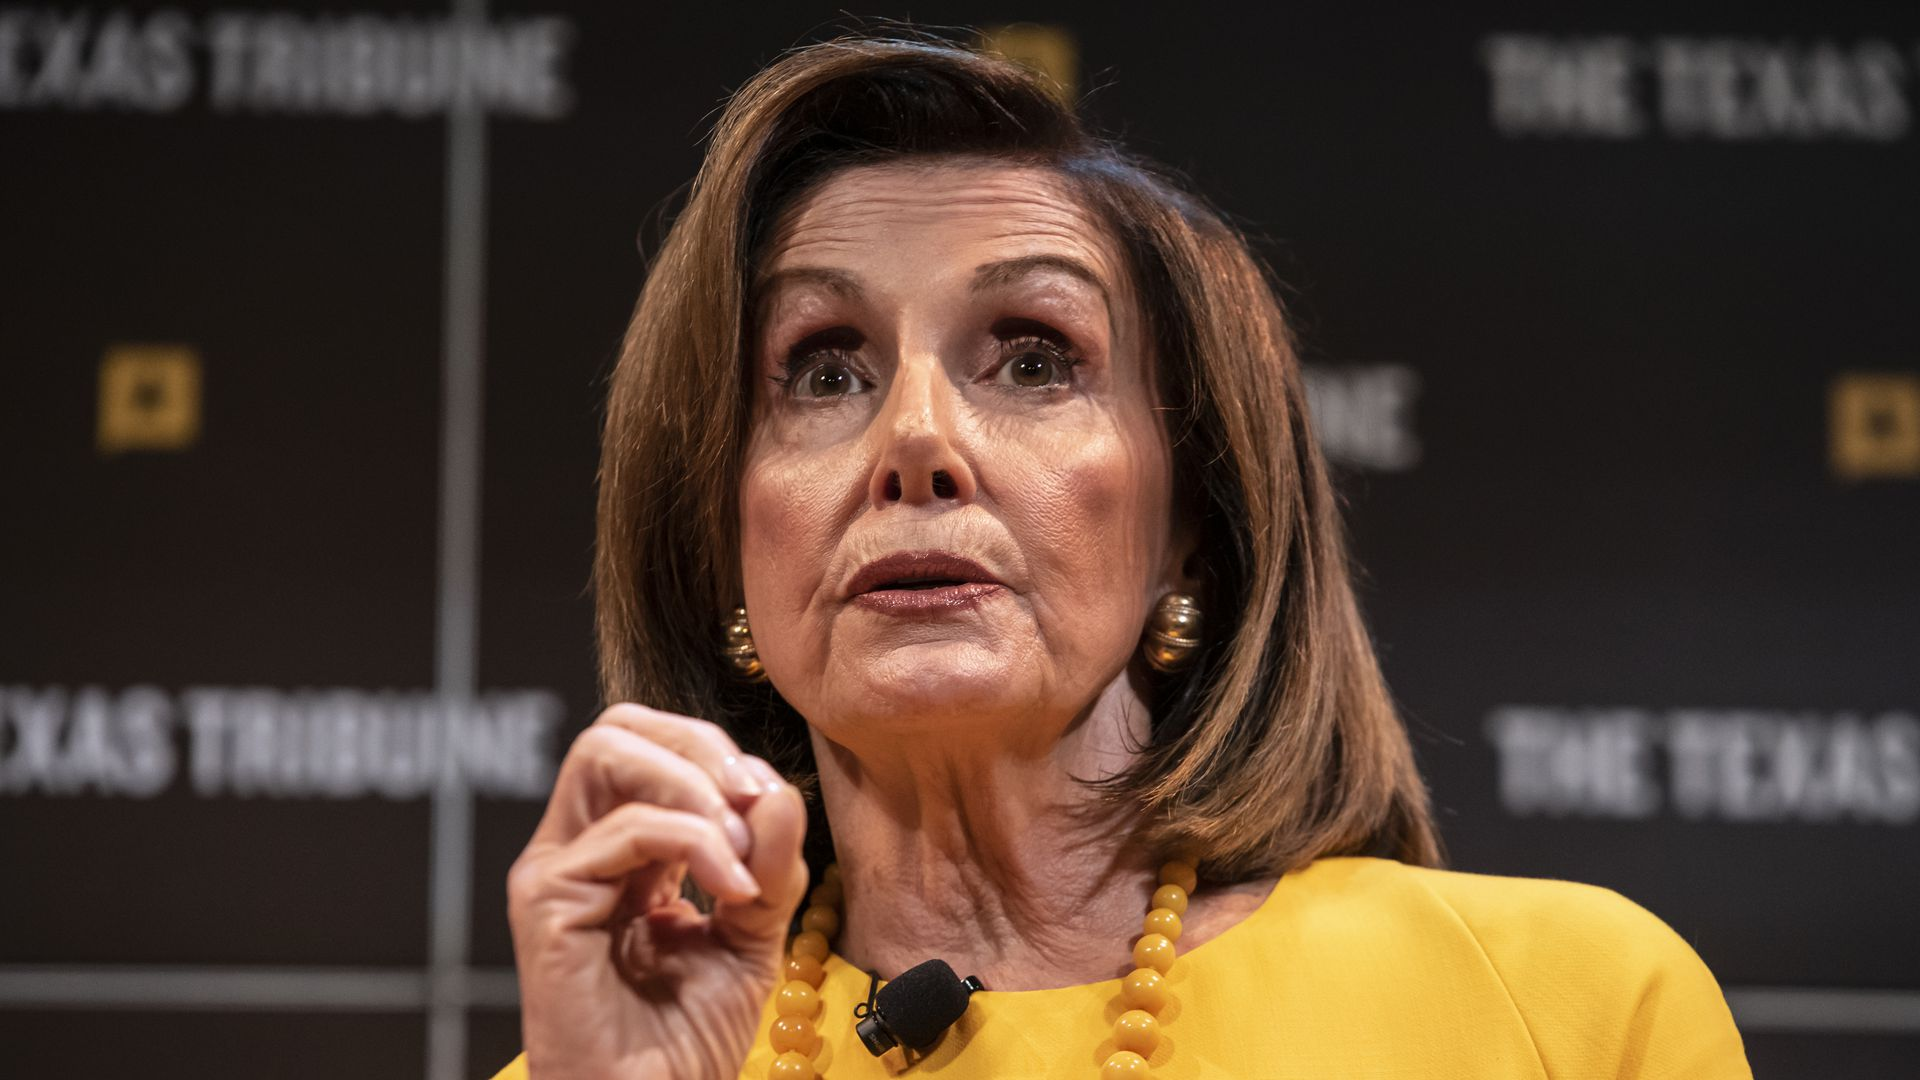 peaker of the House of Representatives, Nancy Pelosi speaks with Texas Tribune CEO, Evan Smith during a panel at The Texas Tribune Festival on September 28, 2019 in Austin, Texas.